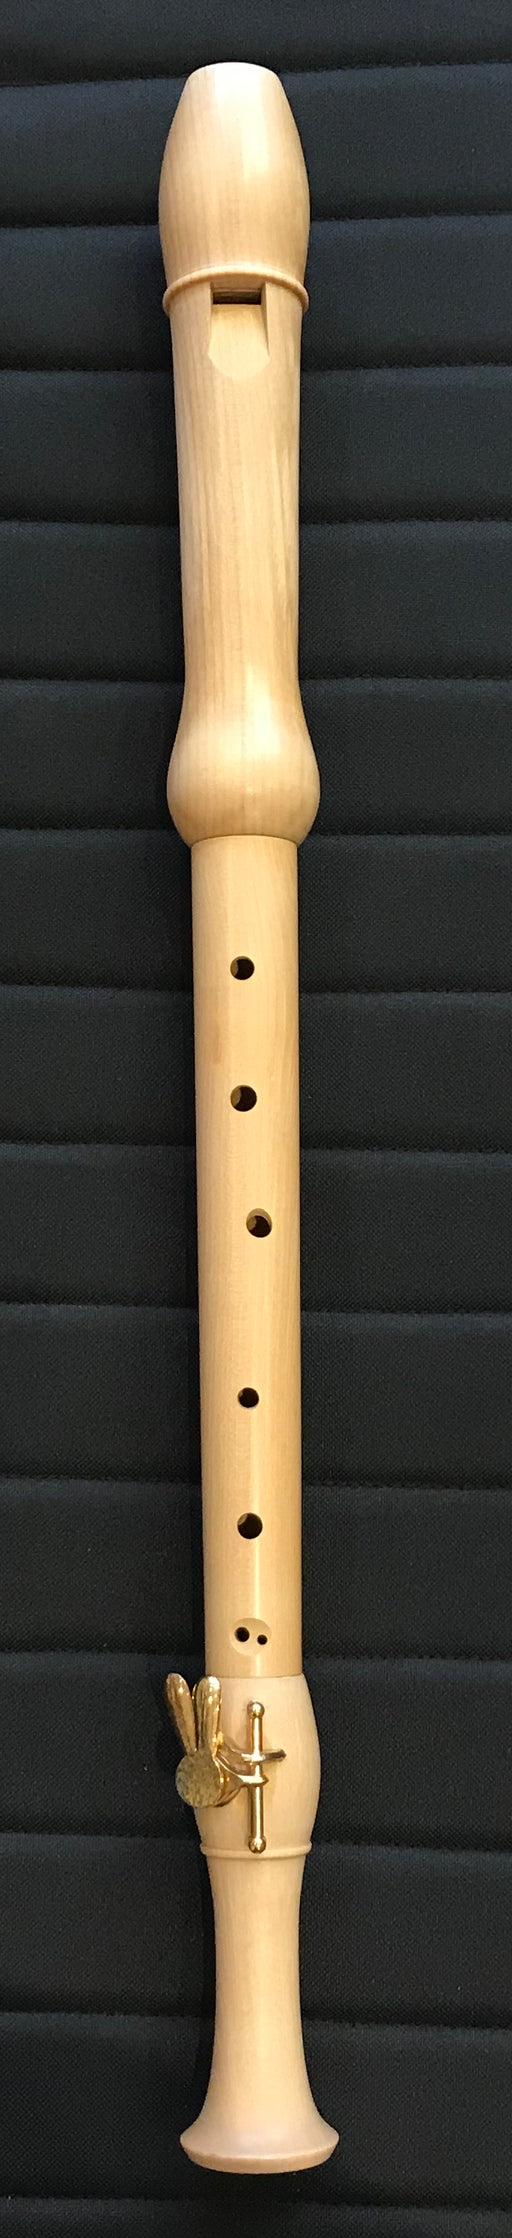 1144L Dolmetsch Zamra tenor in maple